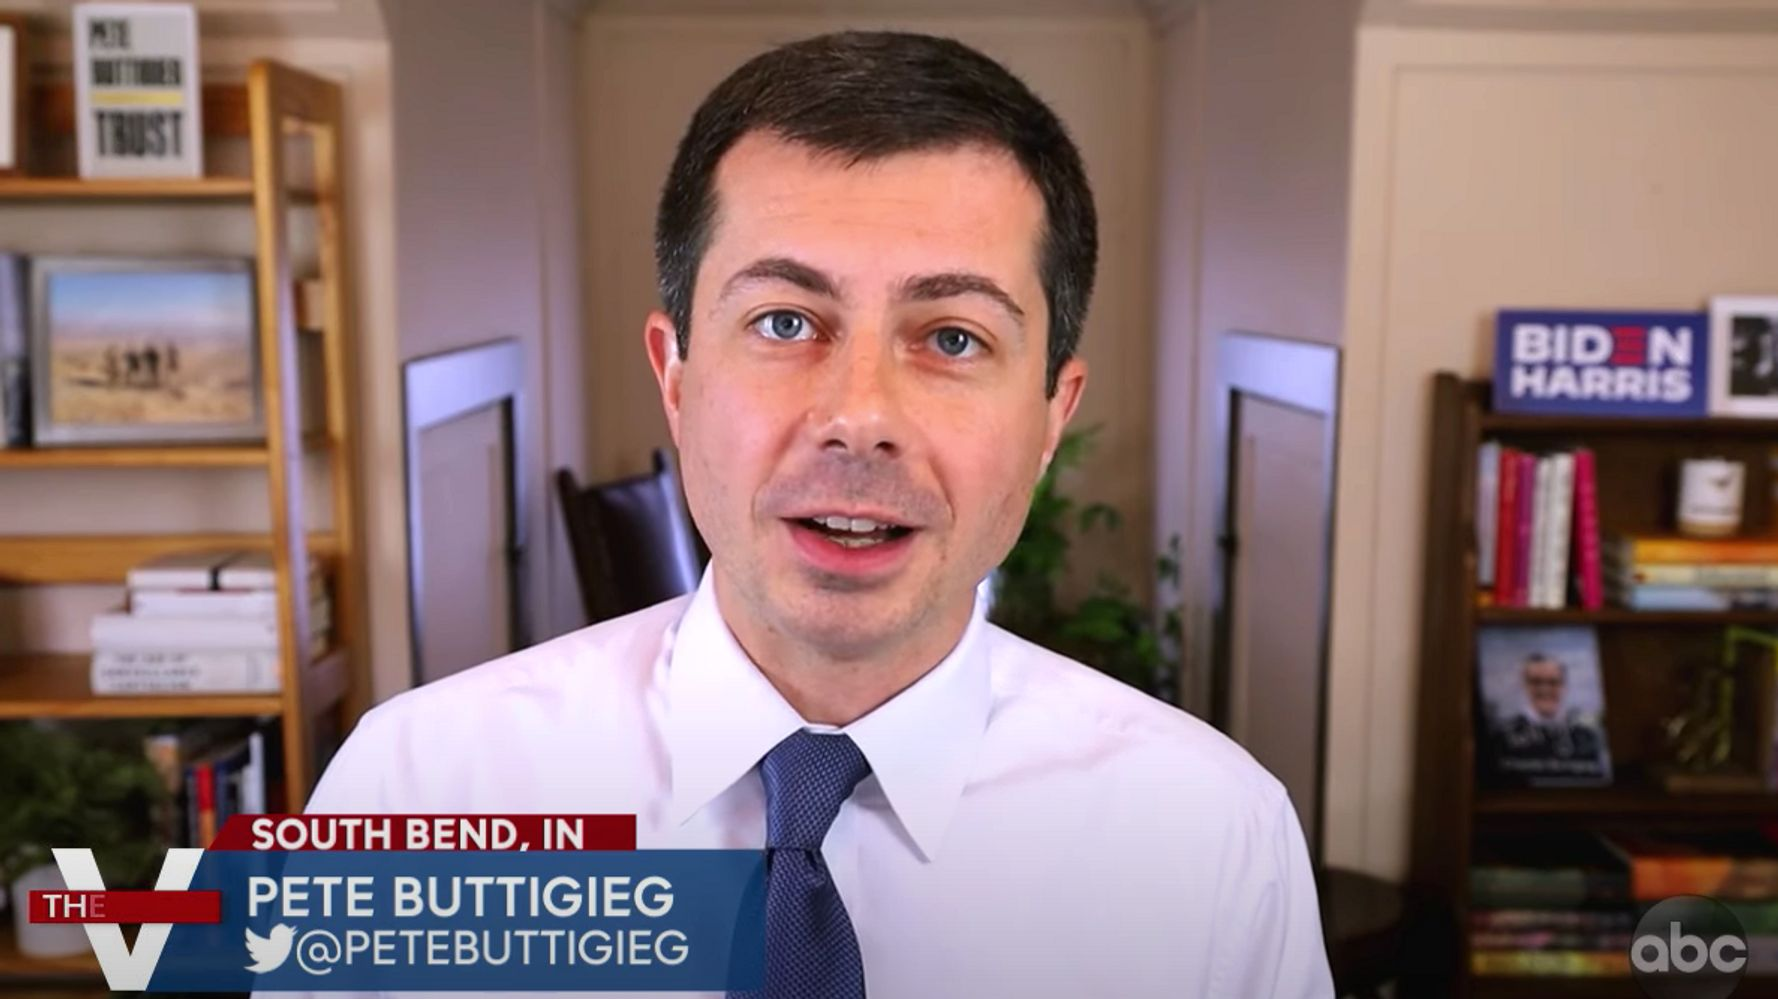 Pete Buttigieg Dishes About Why He Appears On Fox News So Often